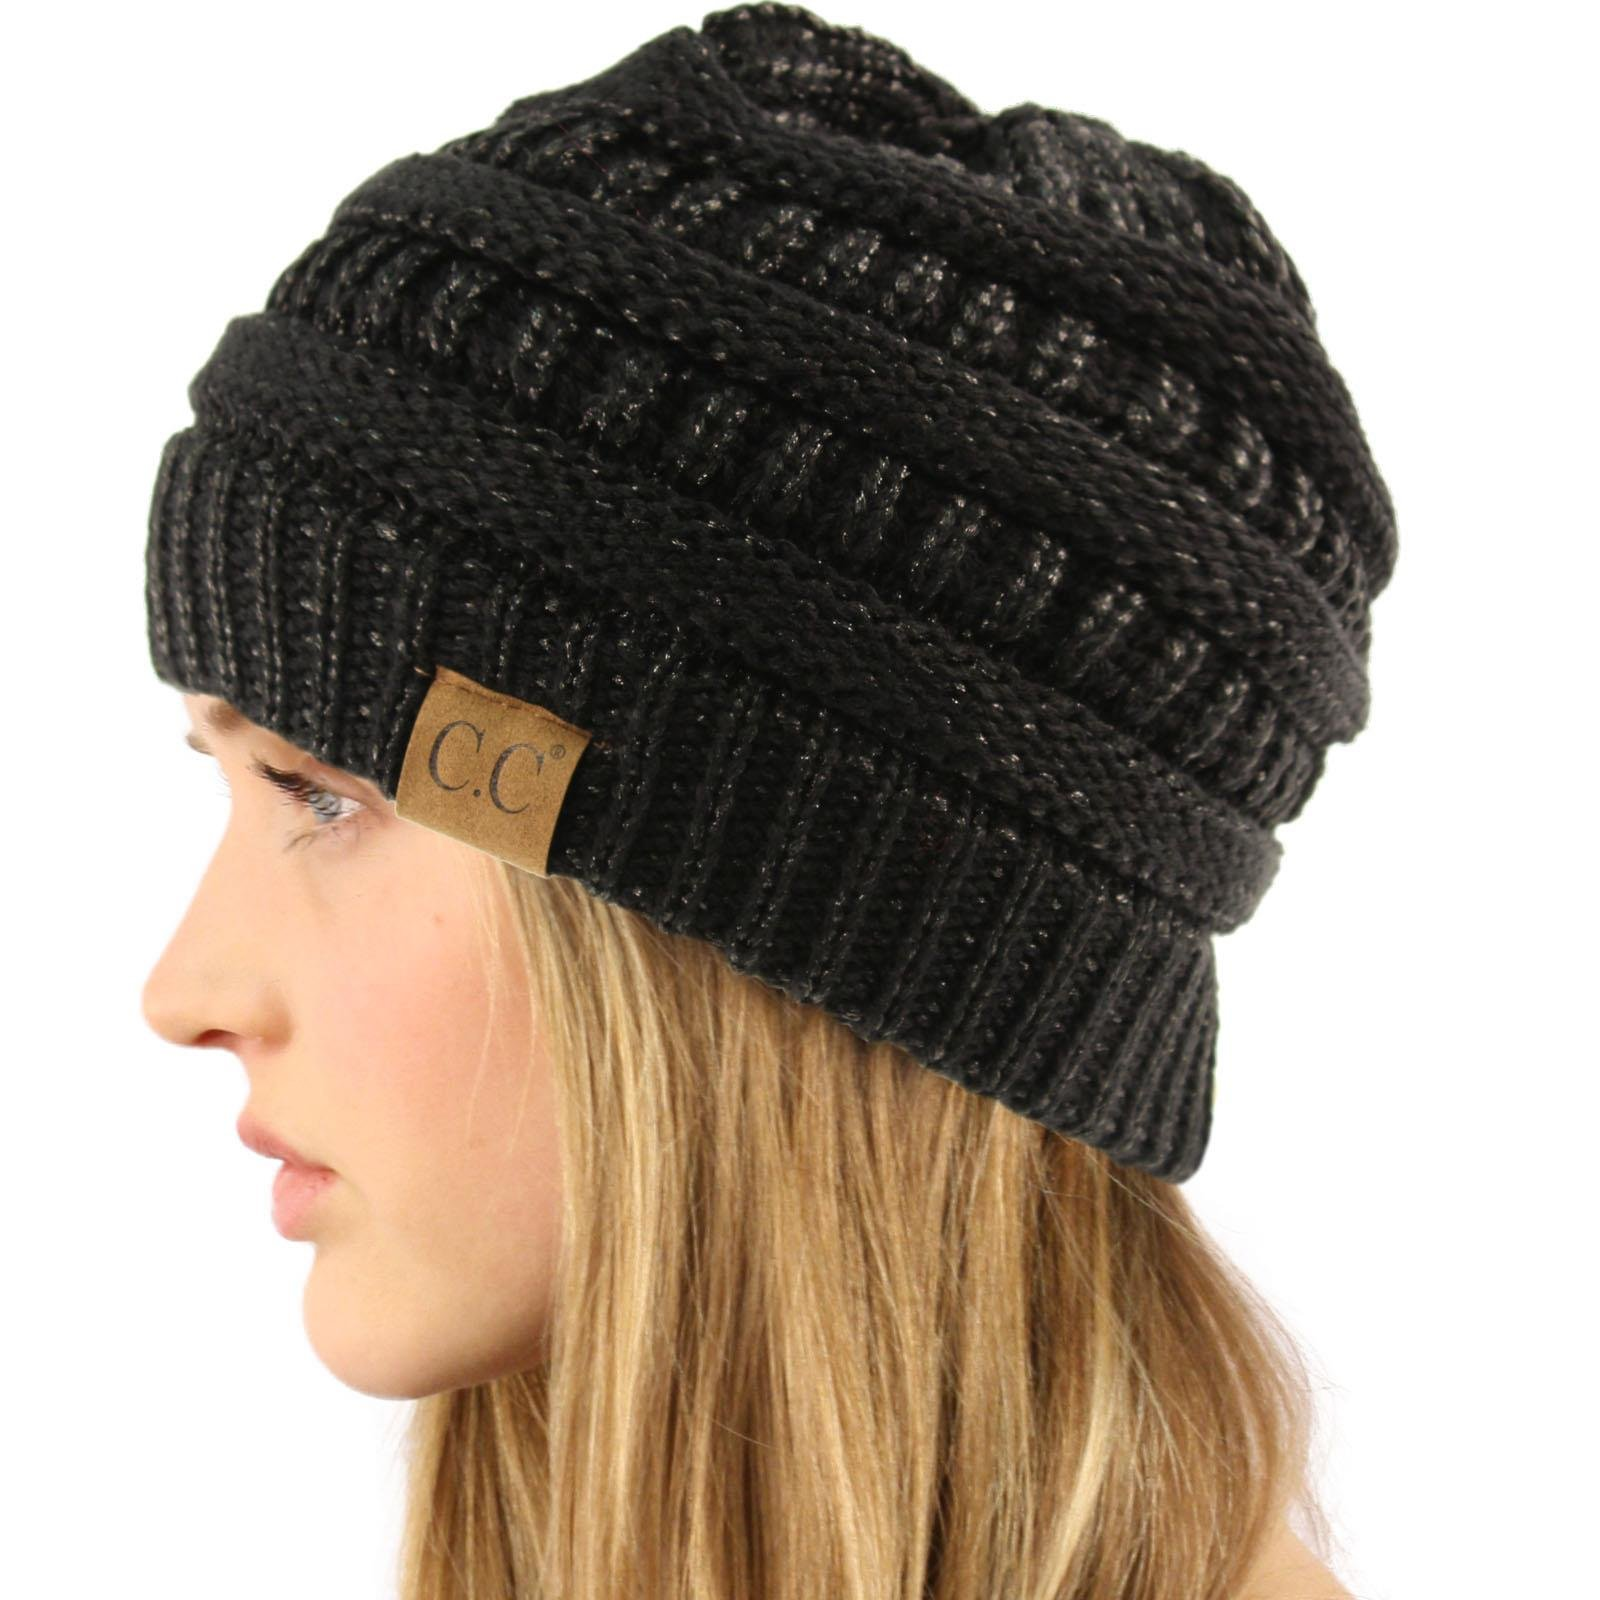 CC Winter Trendy Soft Cable Knit Stretchy Warm Ribbed Beanie Skully Ski Hat Cap Metallic Black/Black